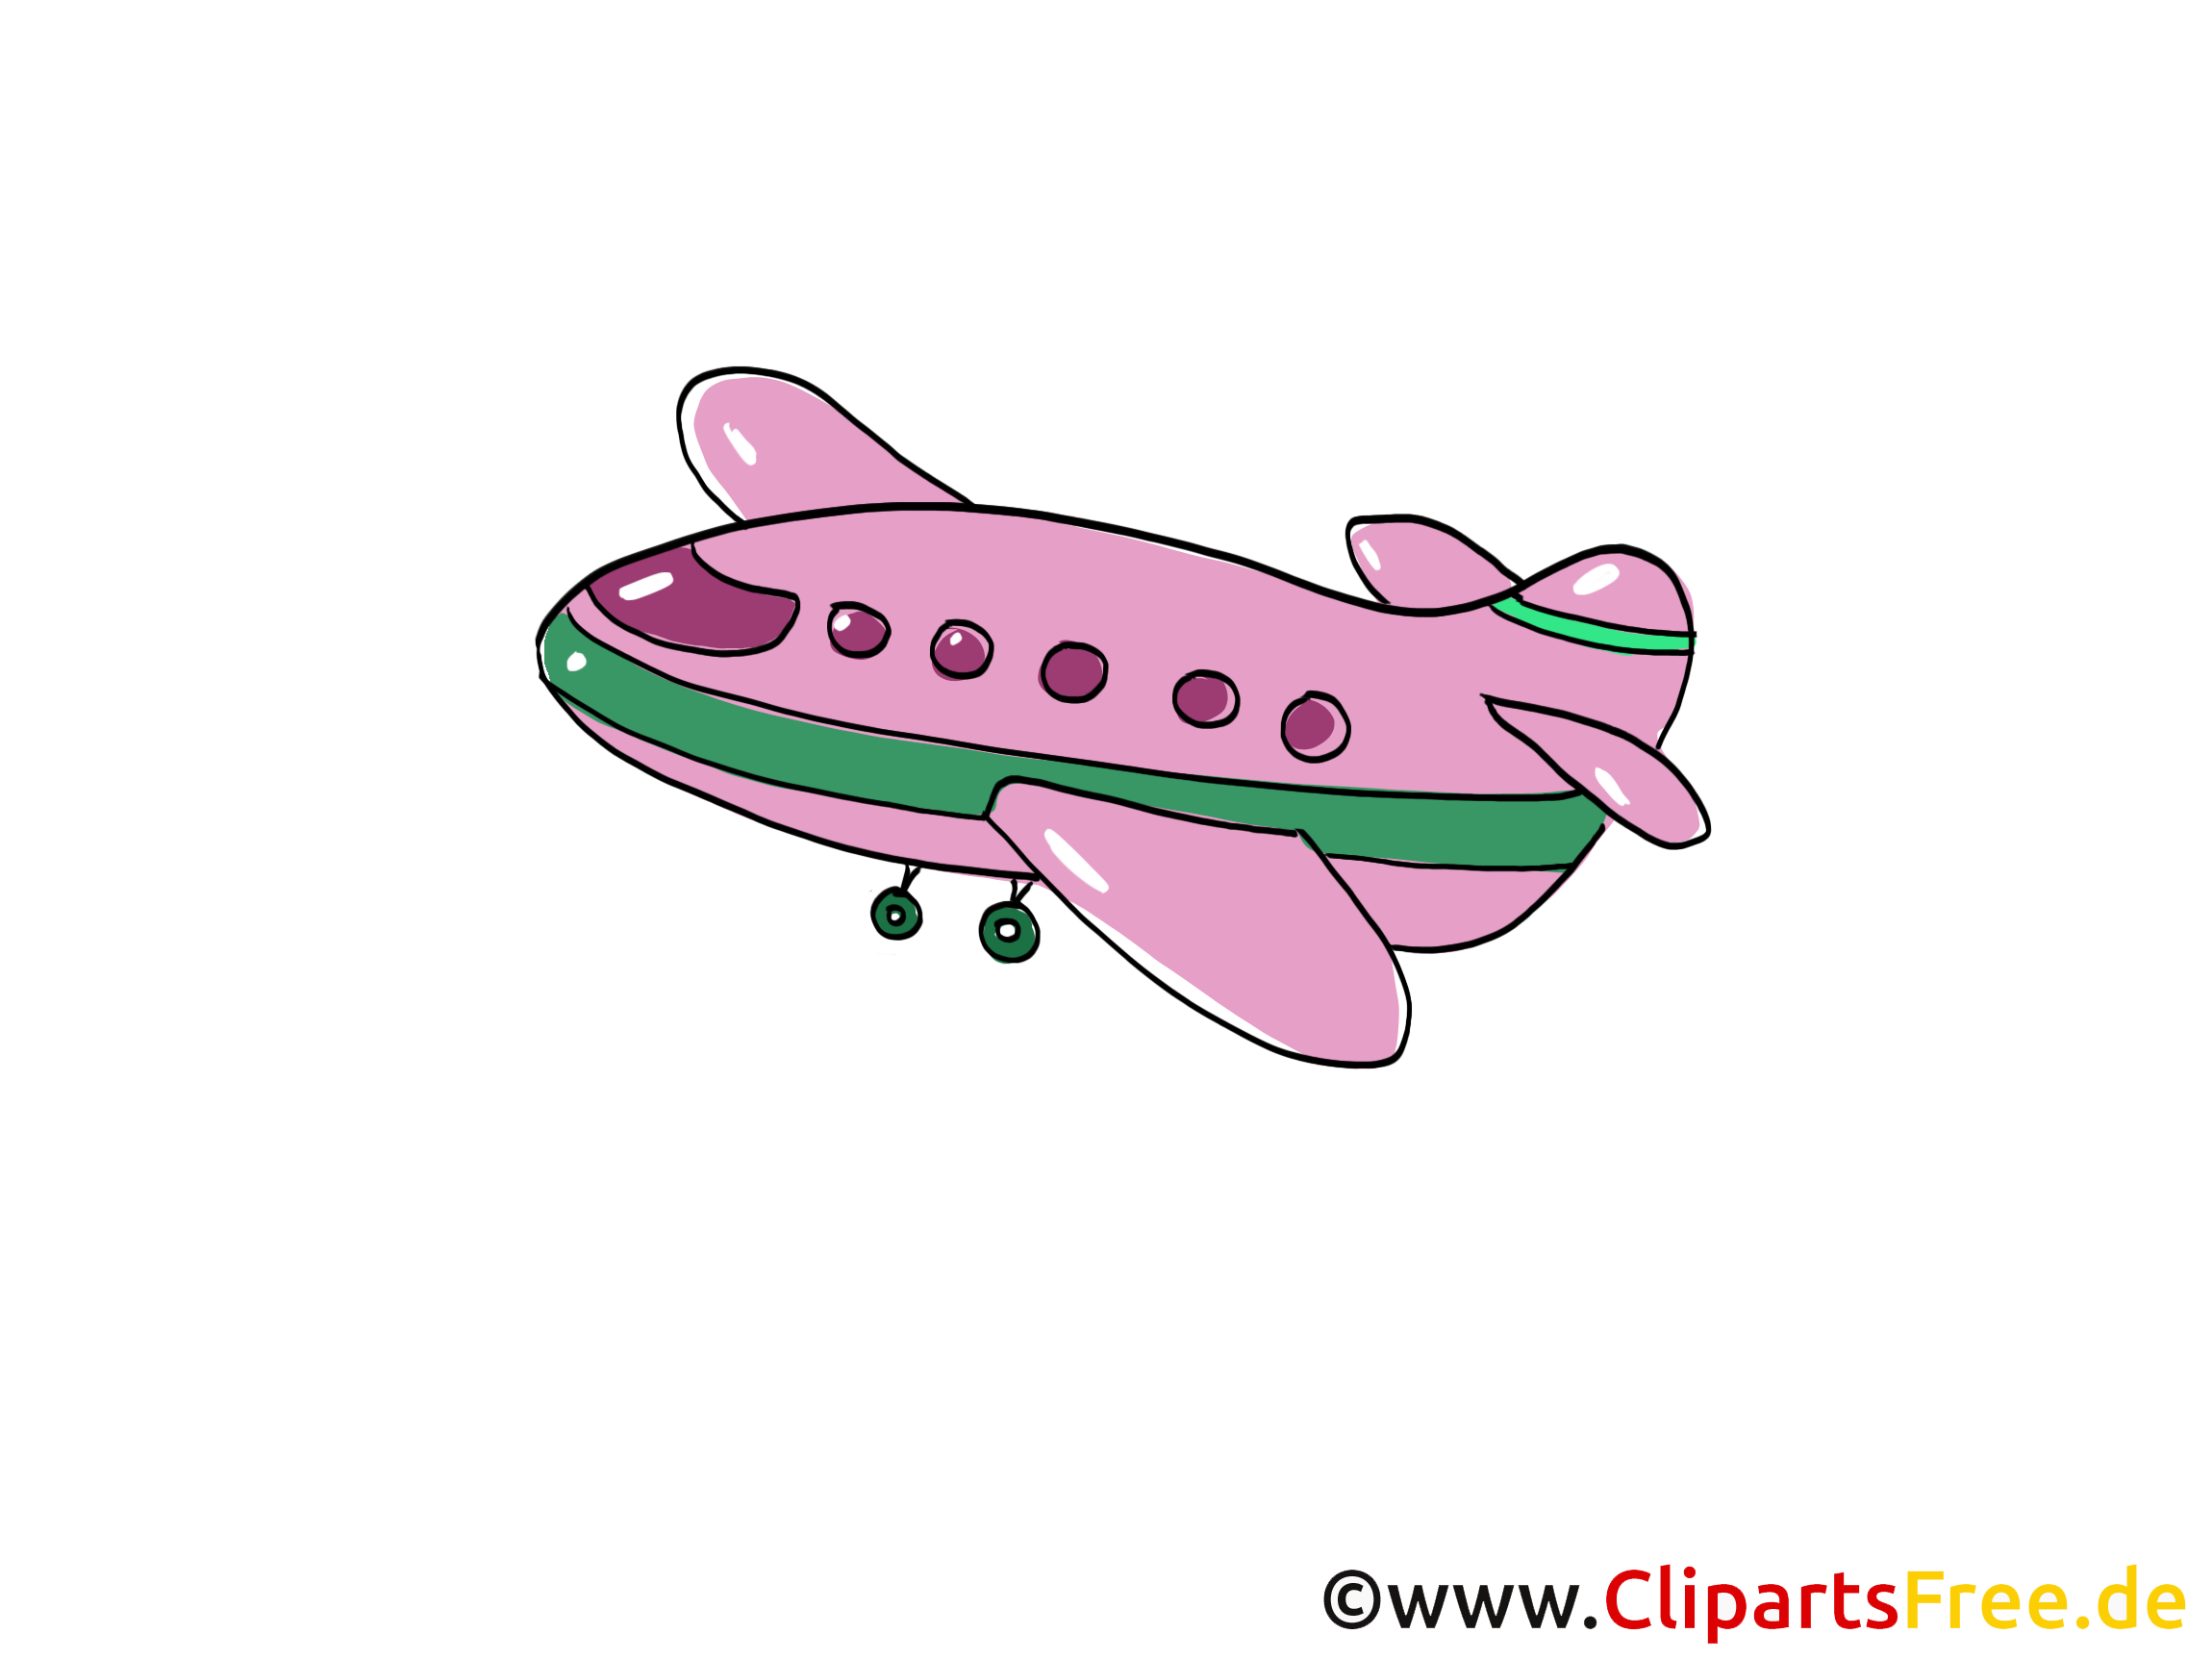 Avion image gratuite illustration